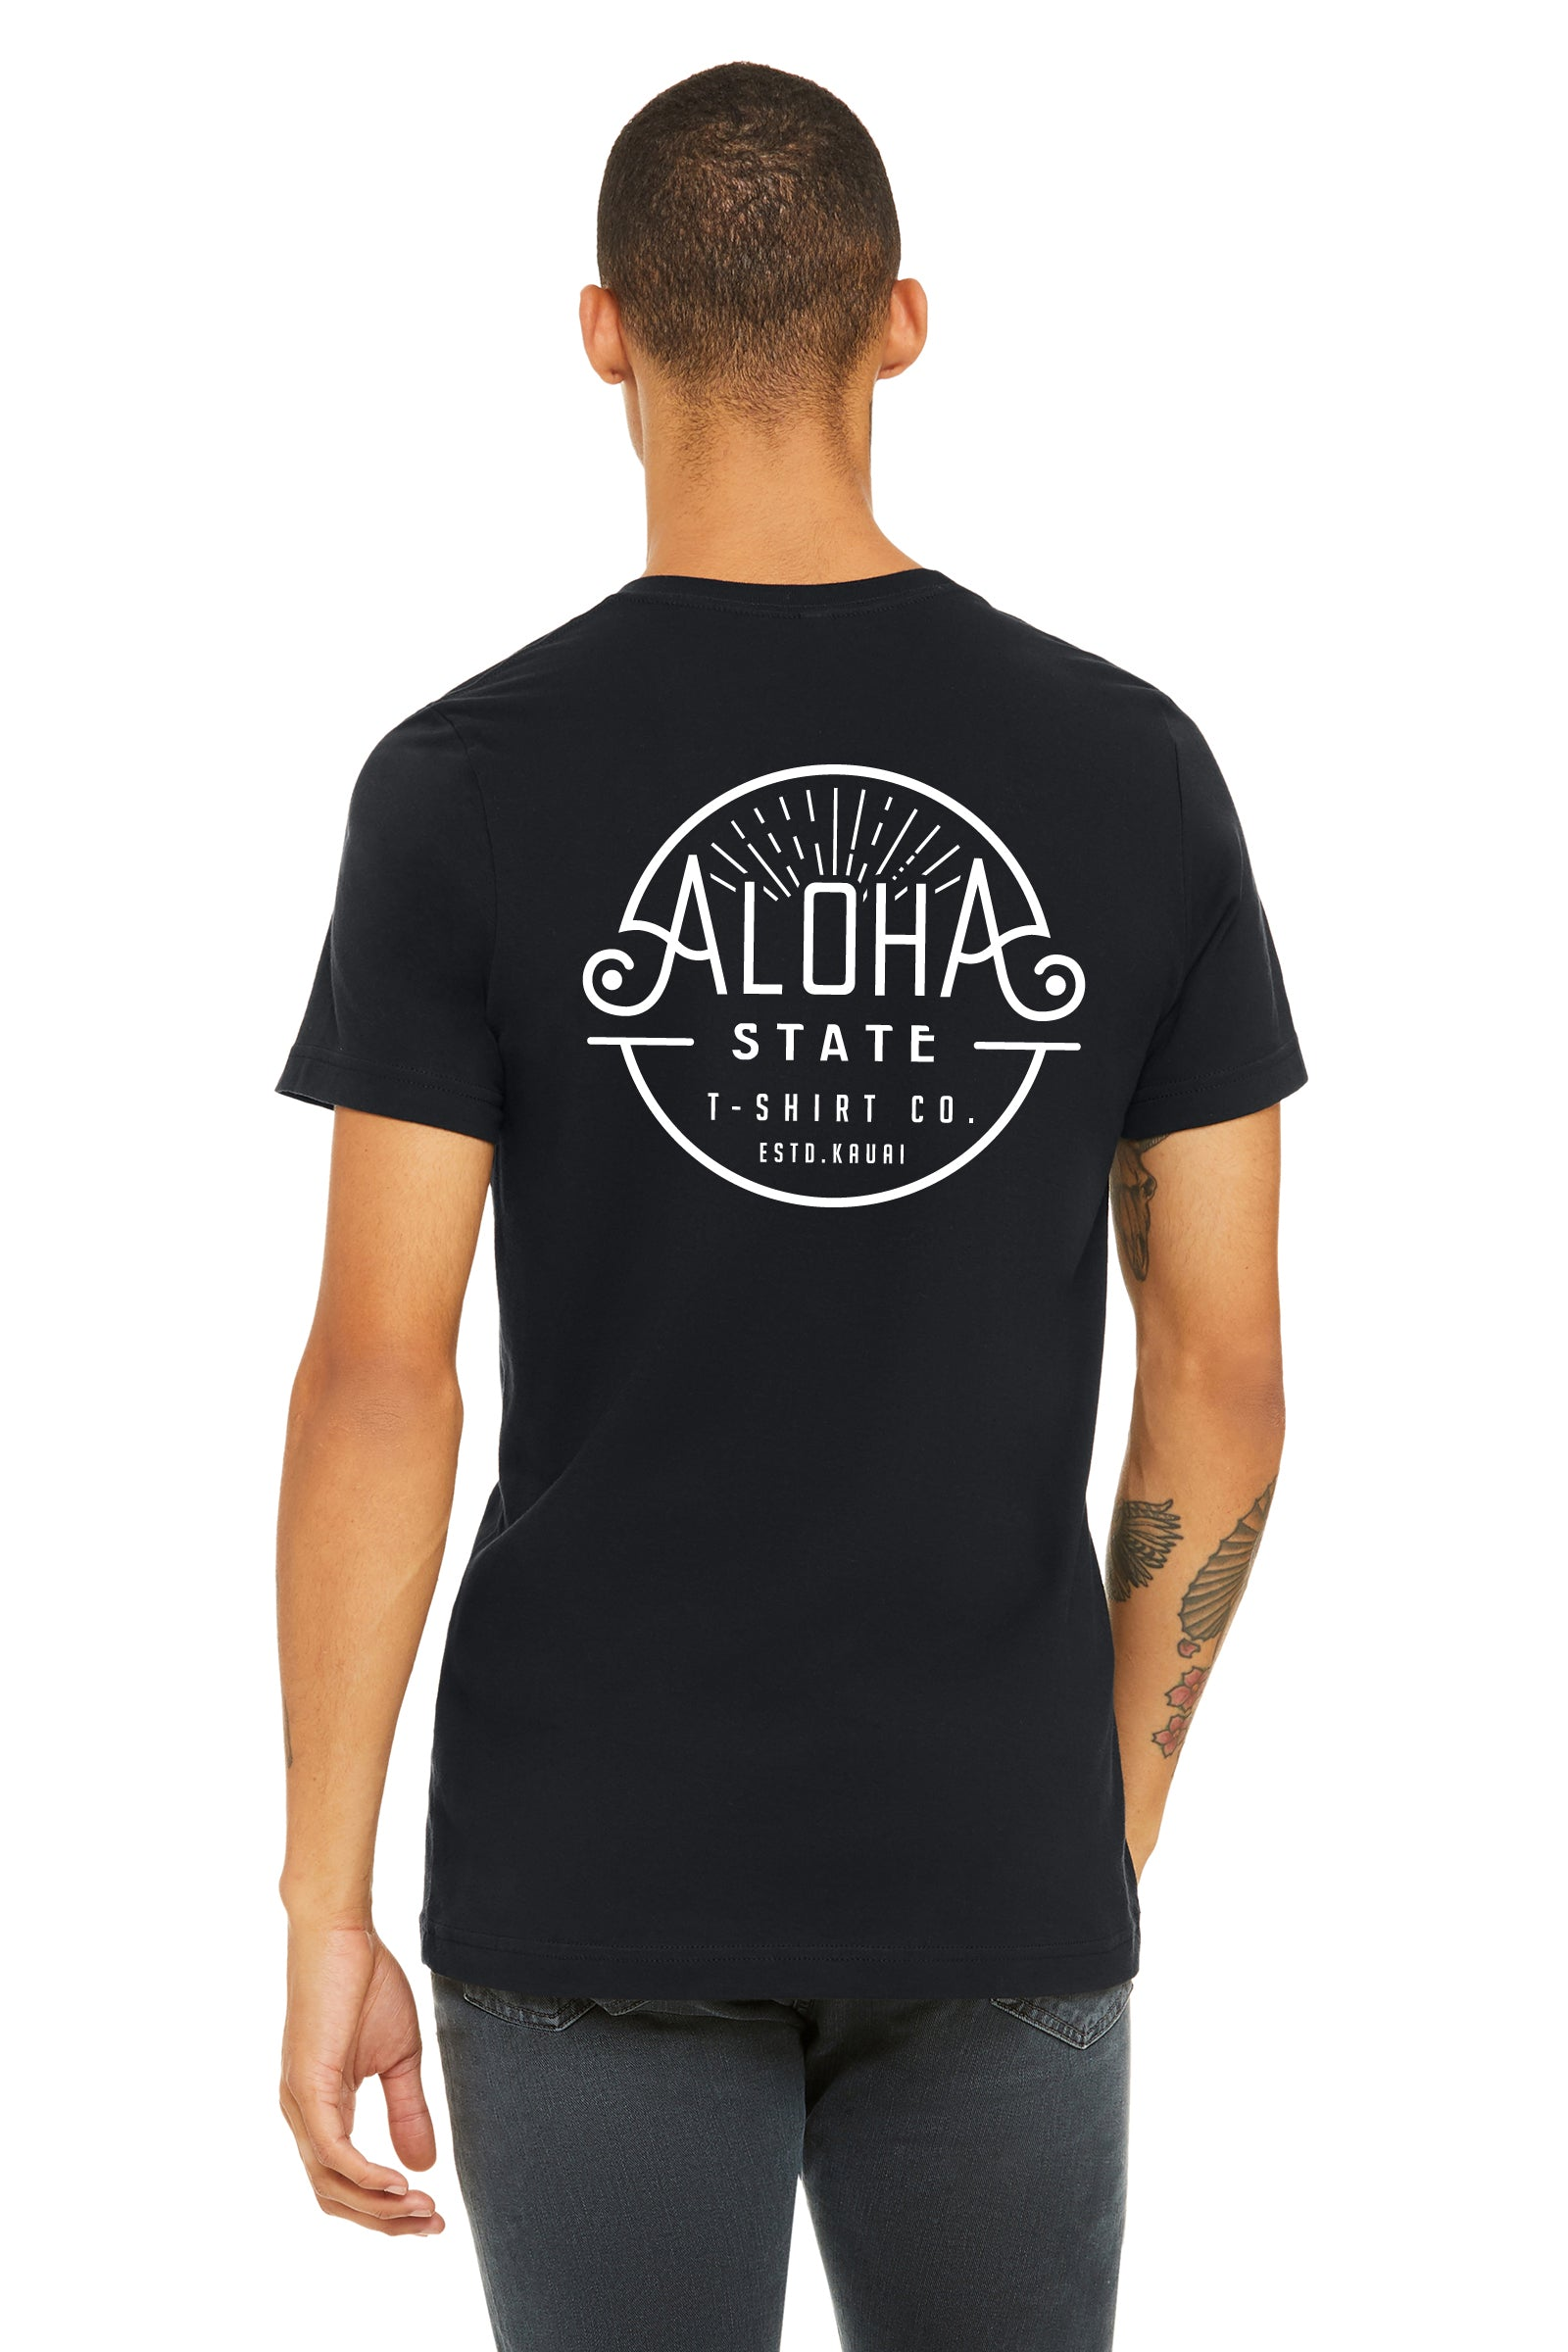 ALOHA STATE LOGO MEN'S T-SHIRT BLACK